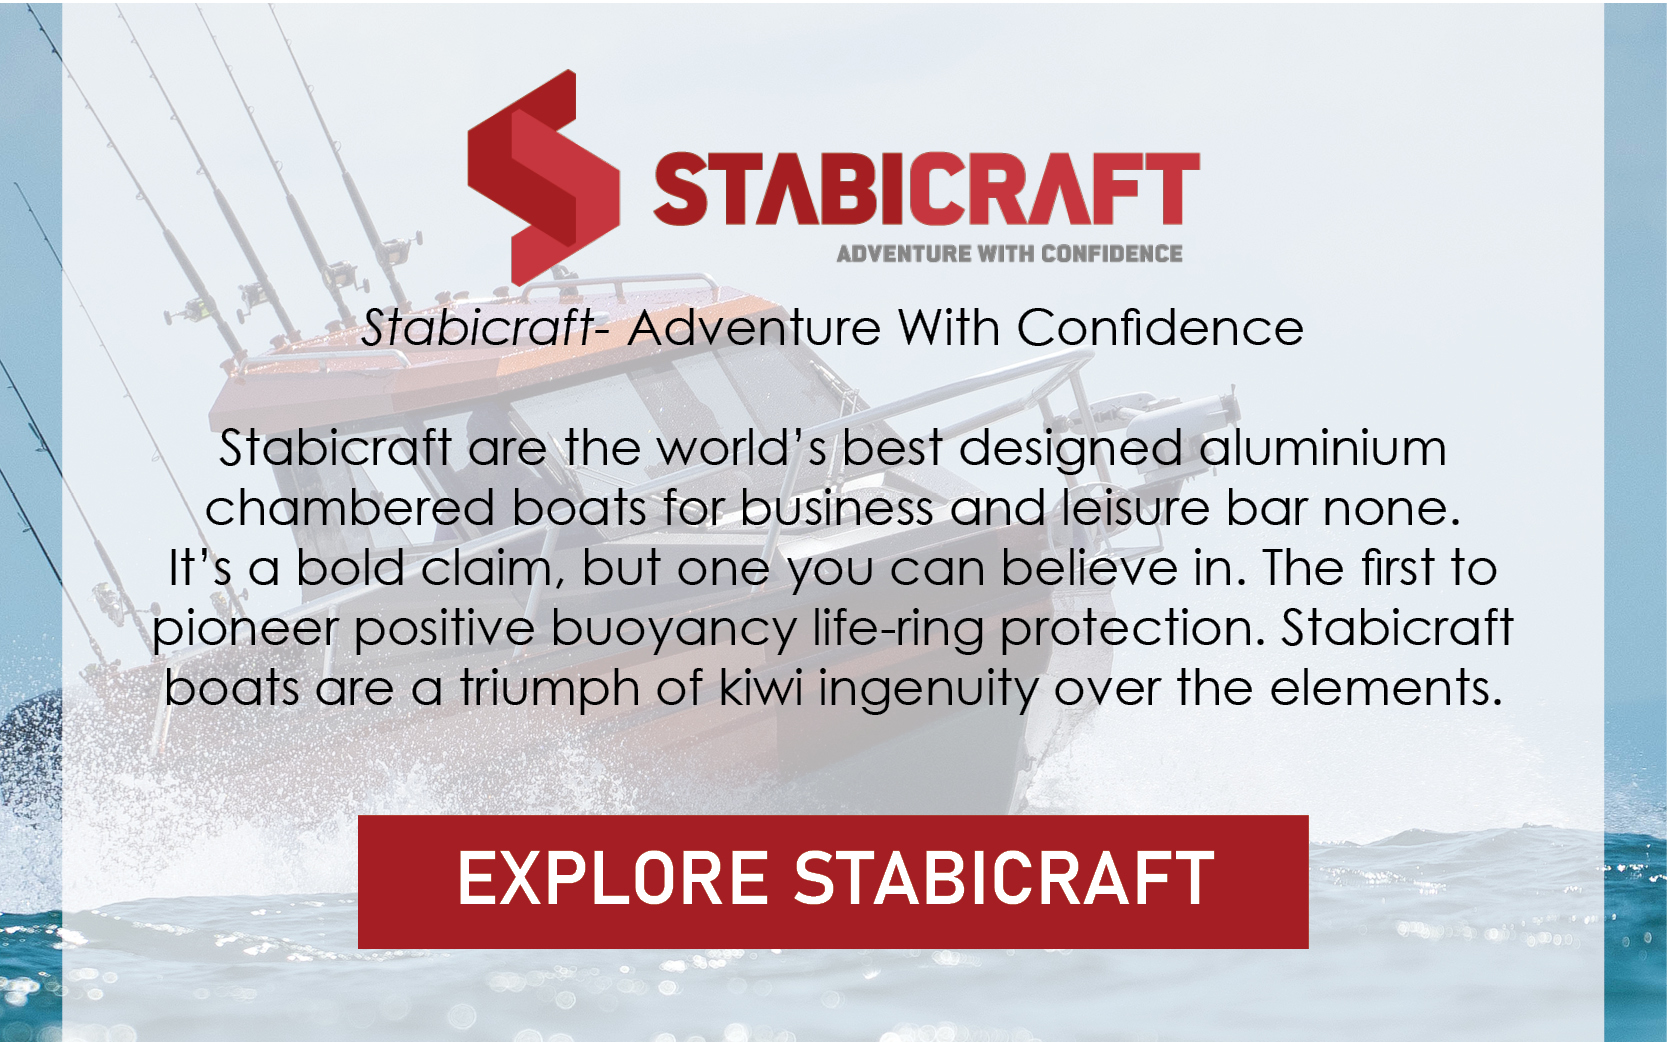 Stabicraft- Adventure With Condfidence!